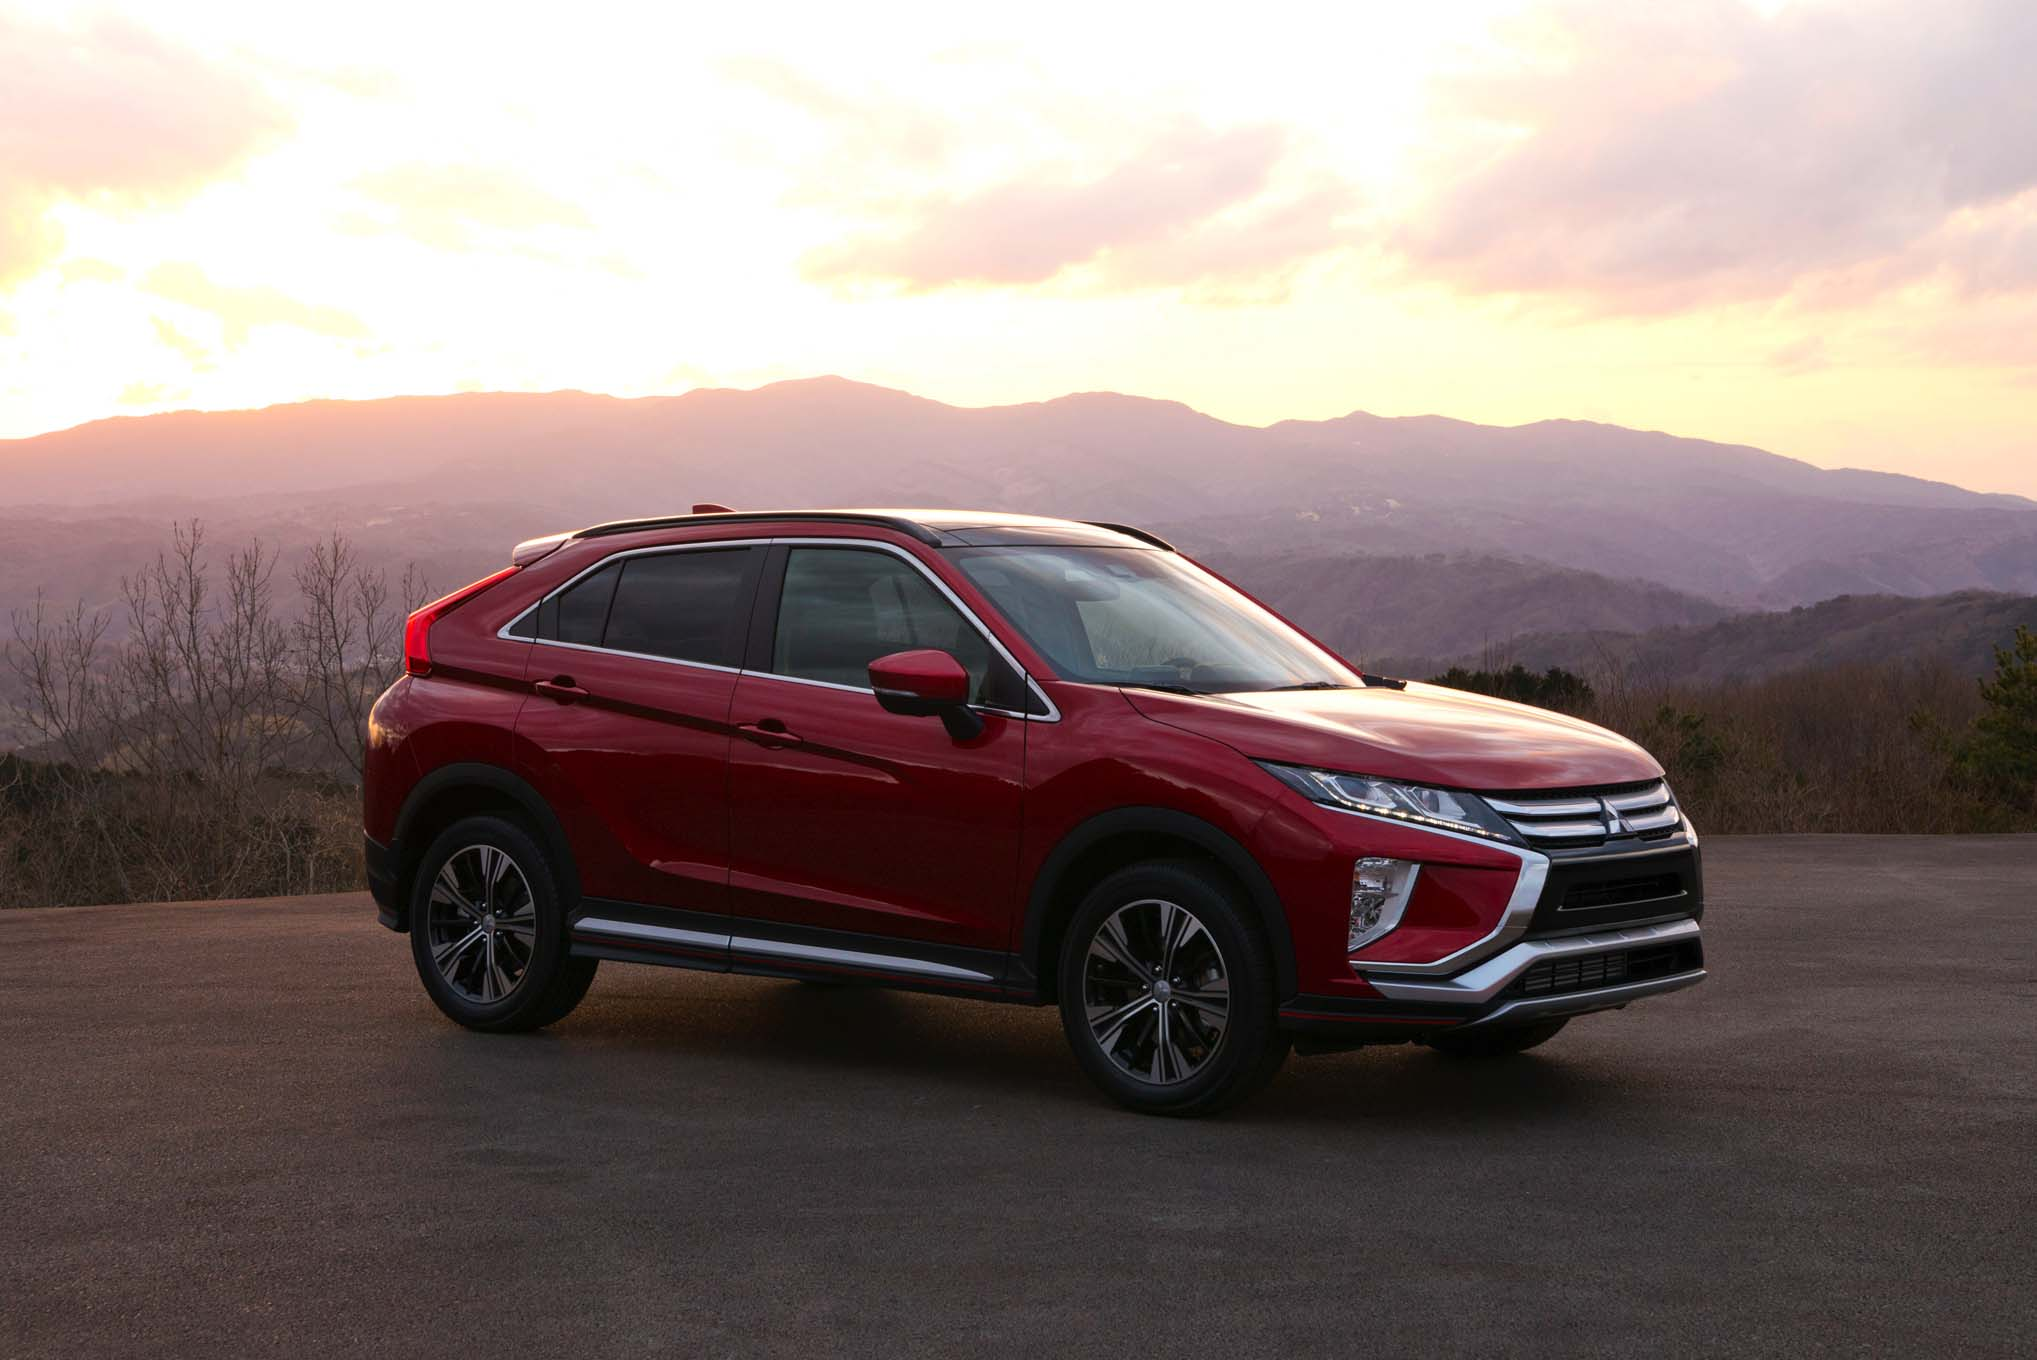 2018 Mitsubishi Eclipse Cross Front Side 02